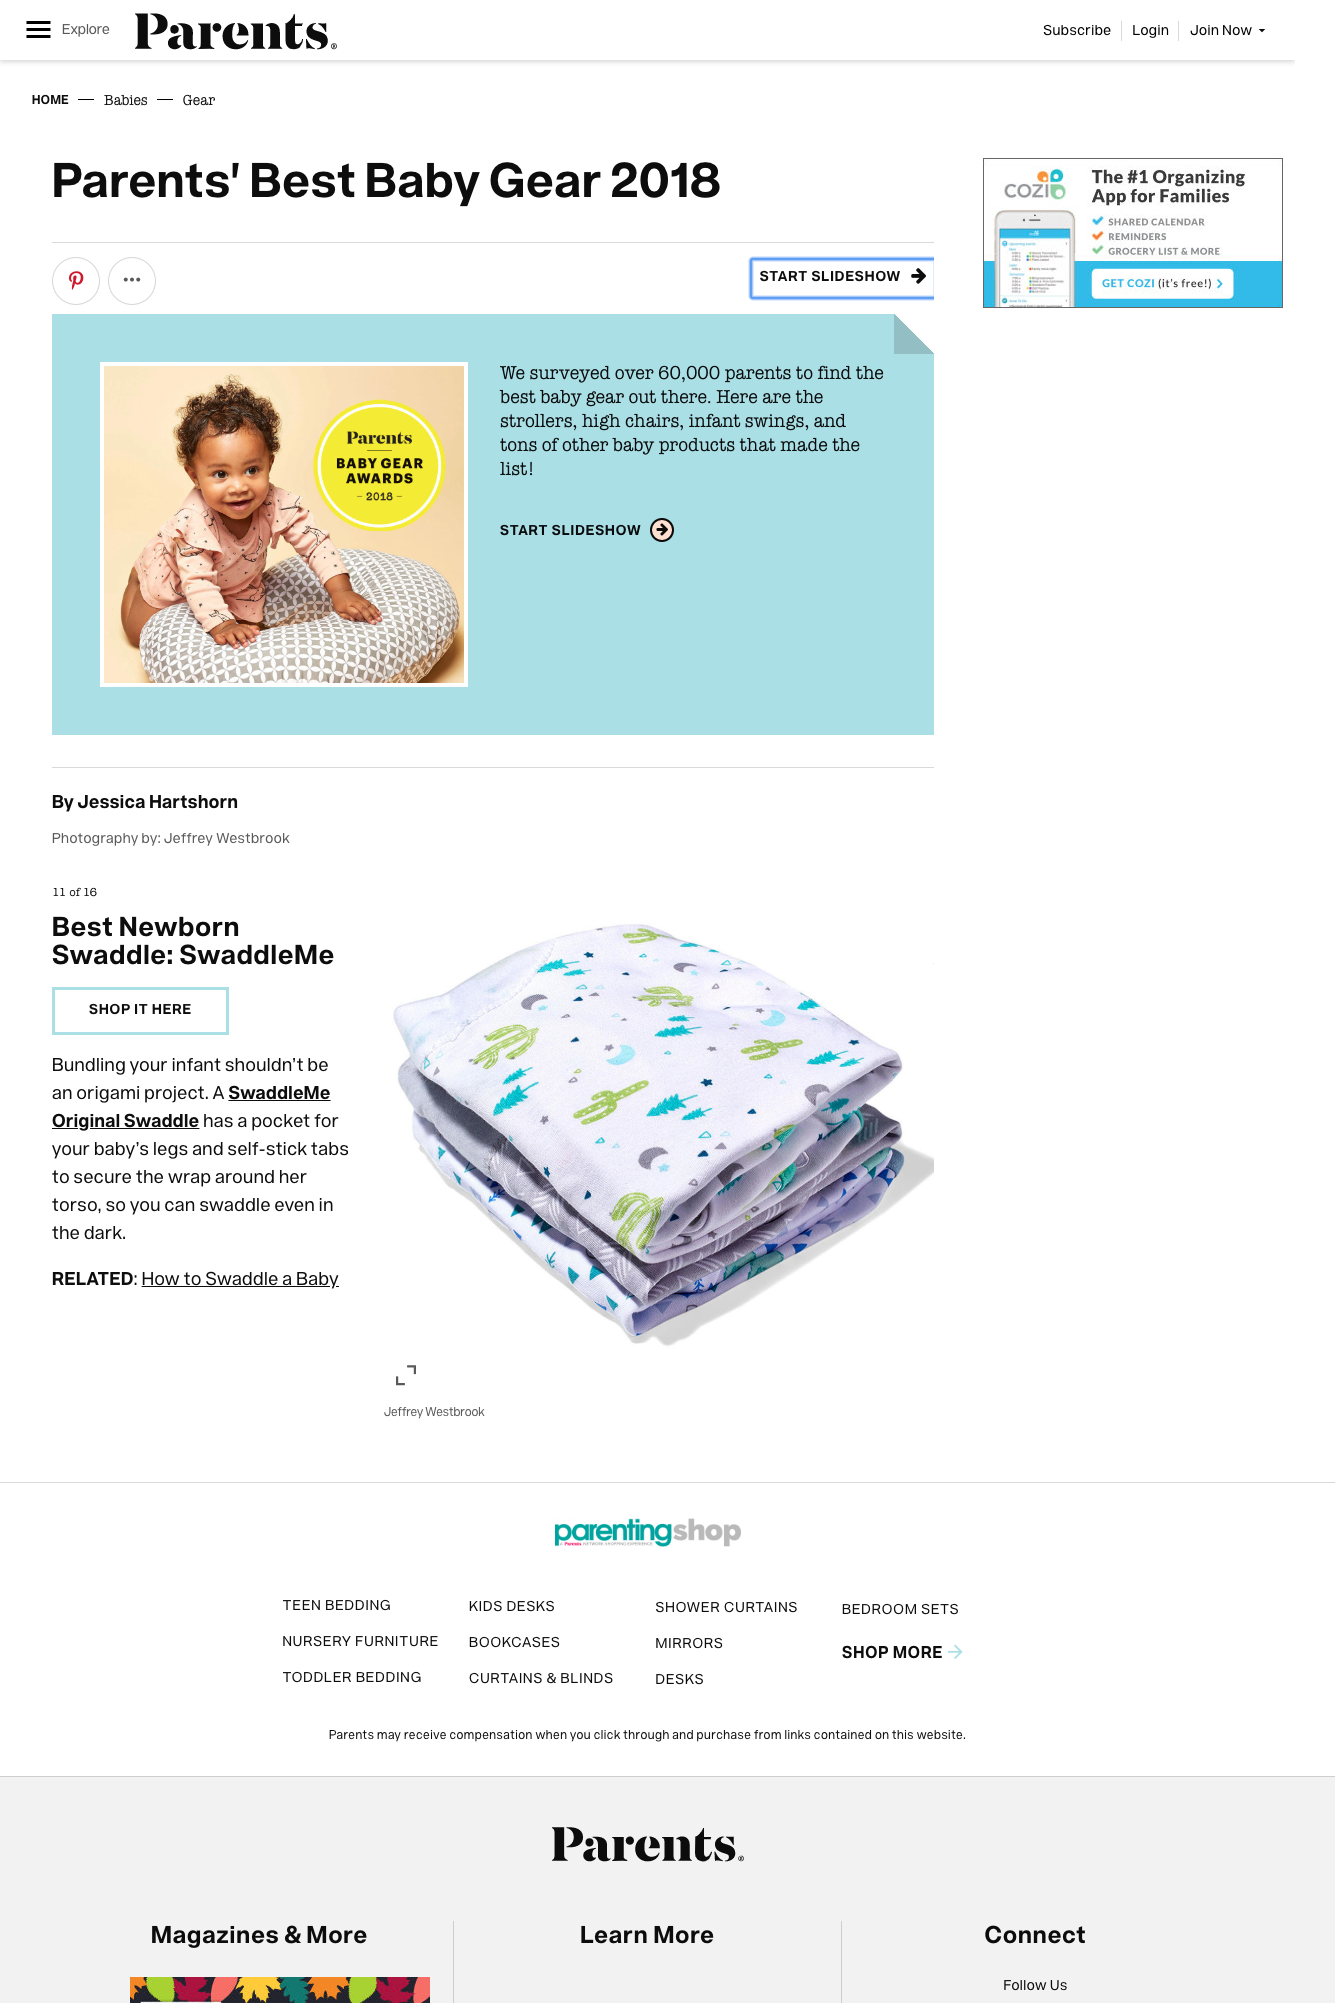 2018.11.08_Parents Online_SwaddleMe Original Swaddle_cropped 2x3.png